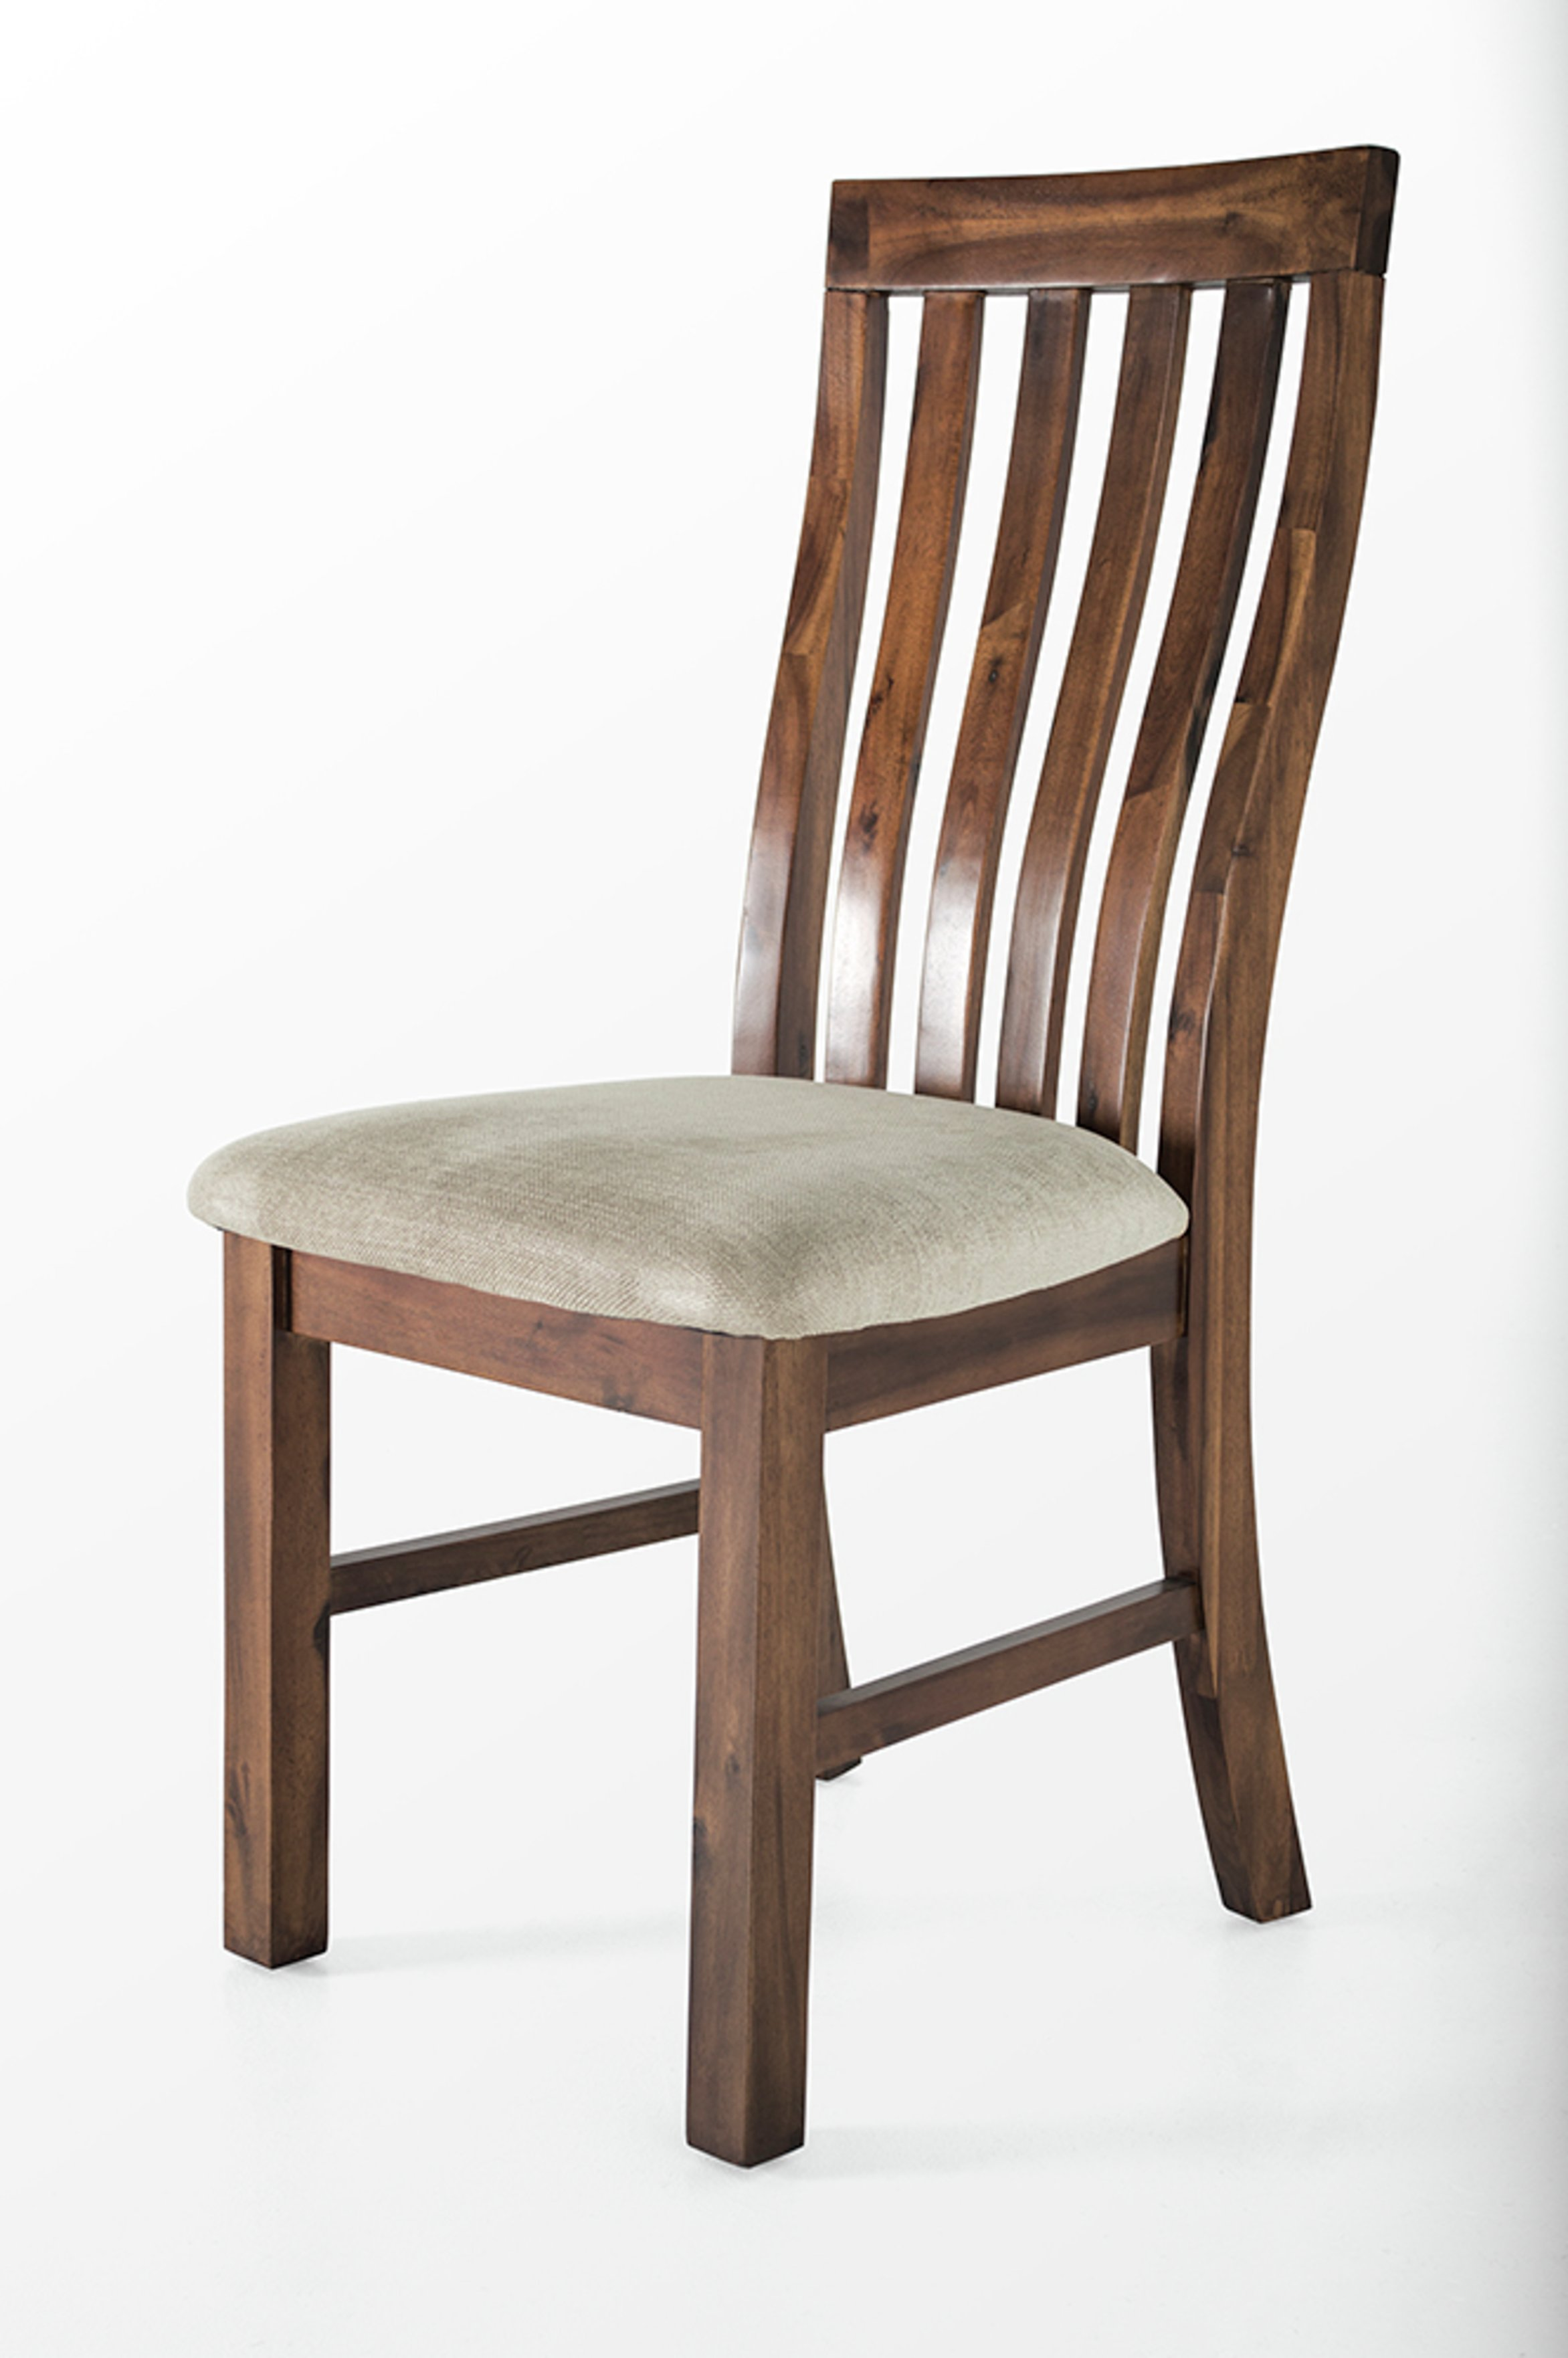 Image of Furnoko Emerson Slatted Back Wood Dining Chair - Natural